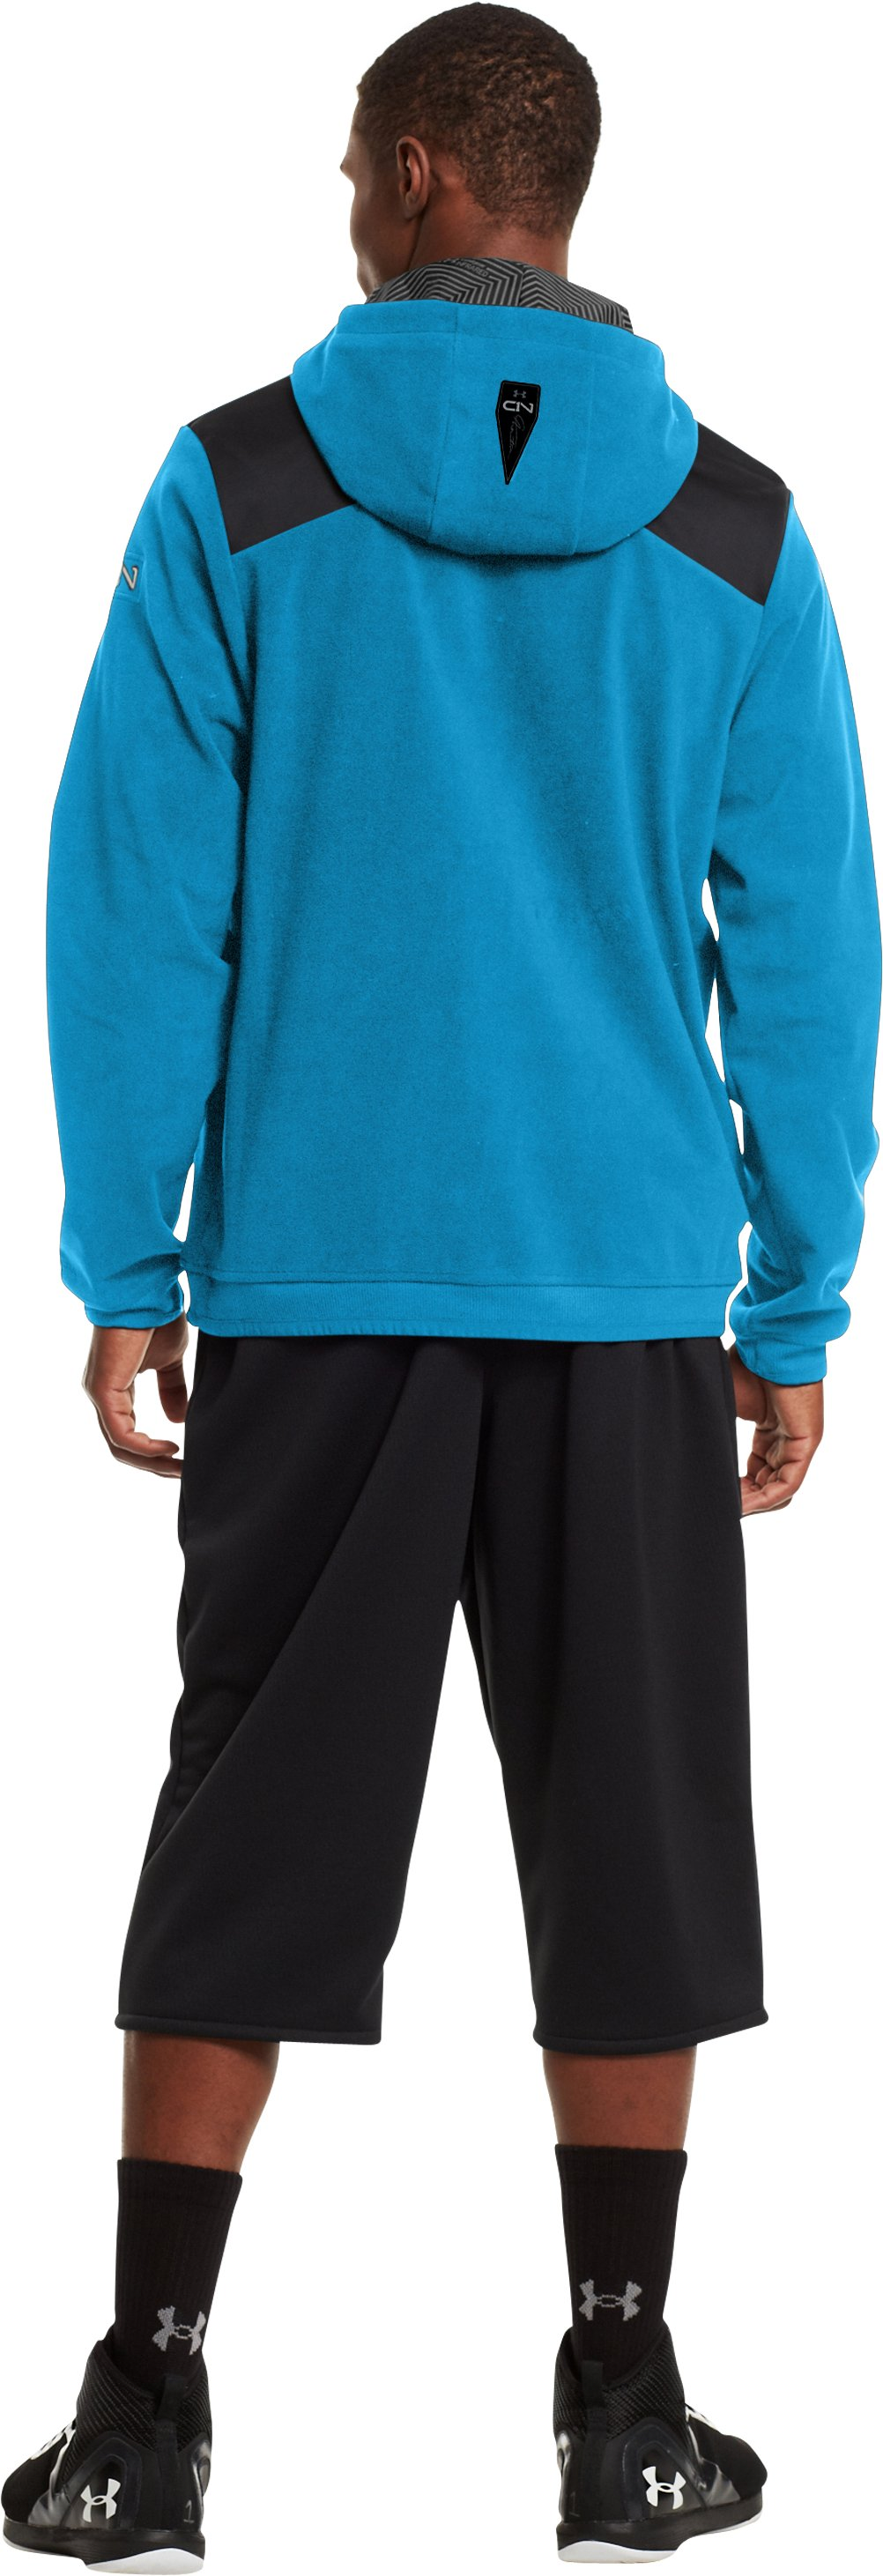 Men's ColdGear® Infrared C1N ¼ Zip Hoodie, Capri, Back